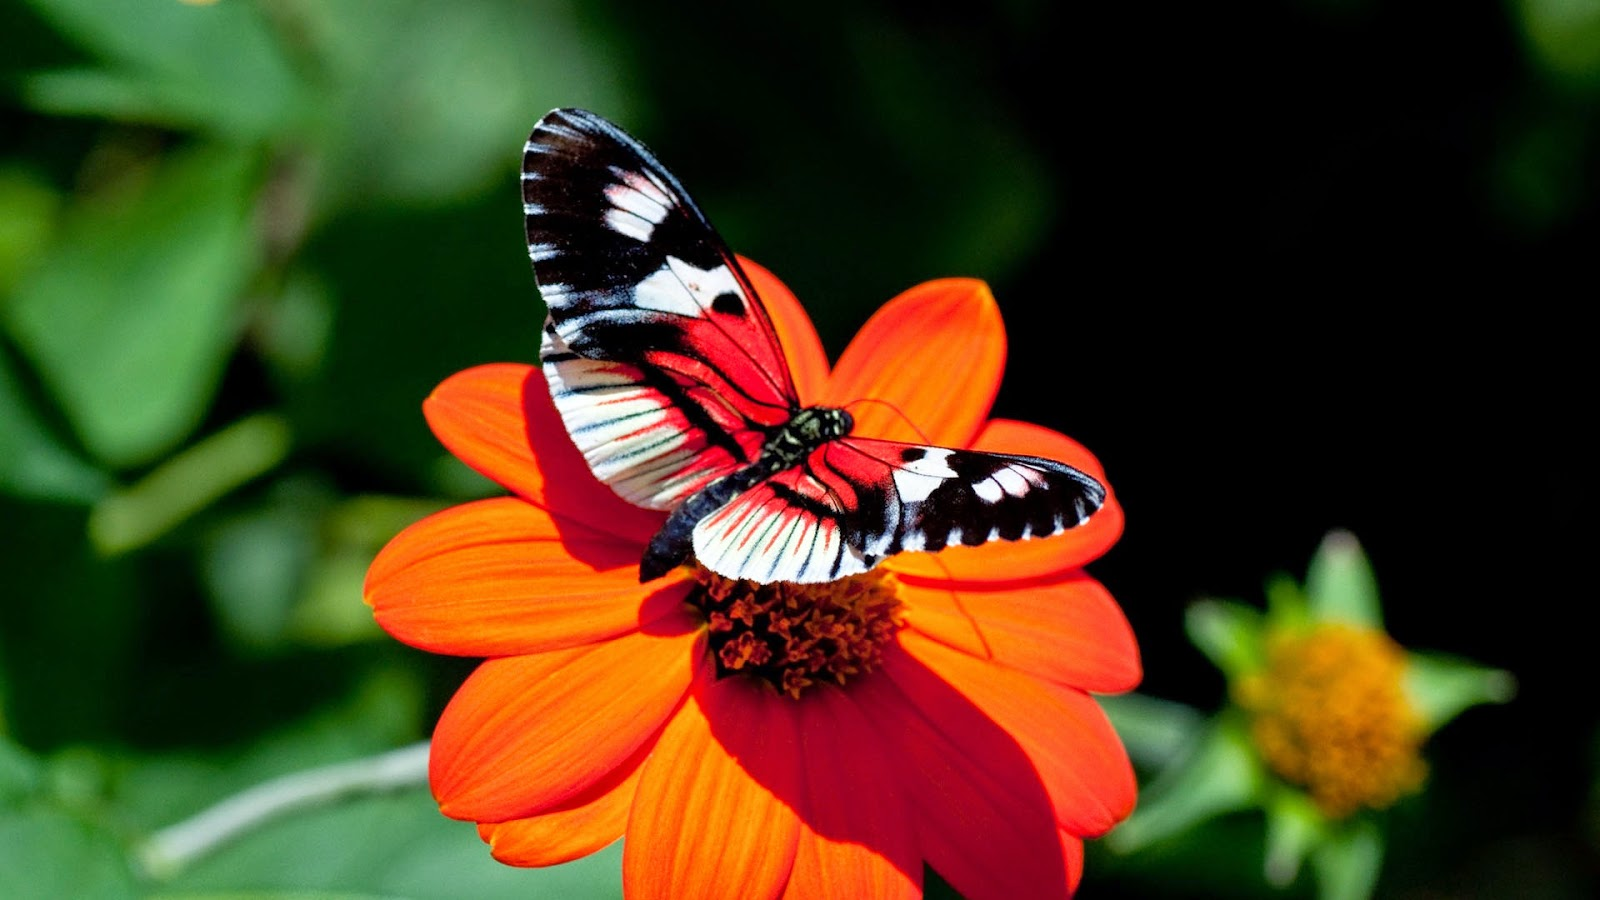 latest wallpapers of butterflies - photo #19